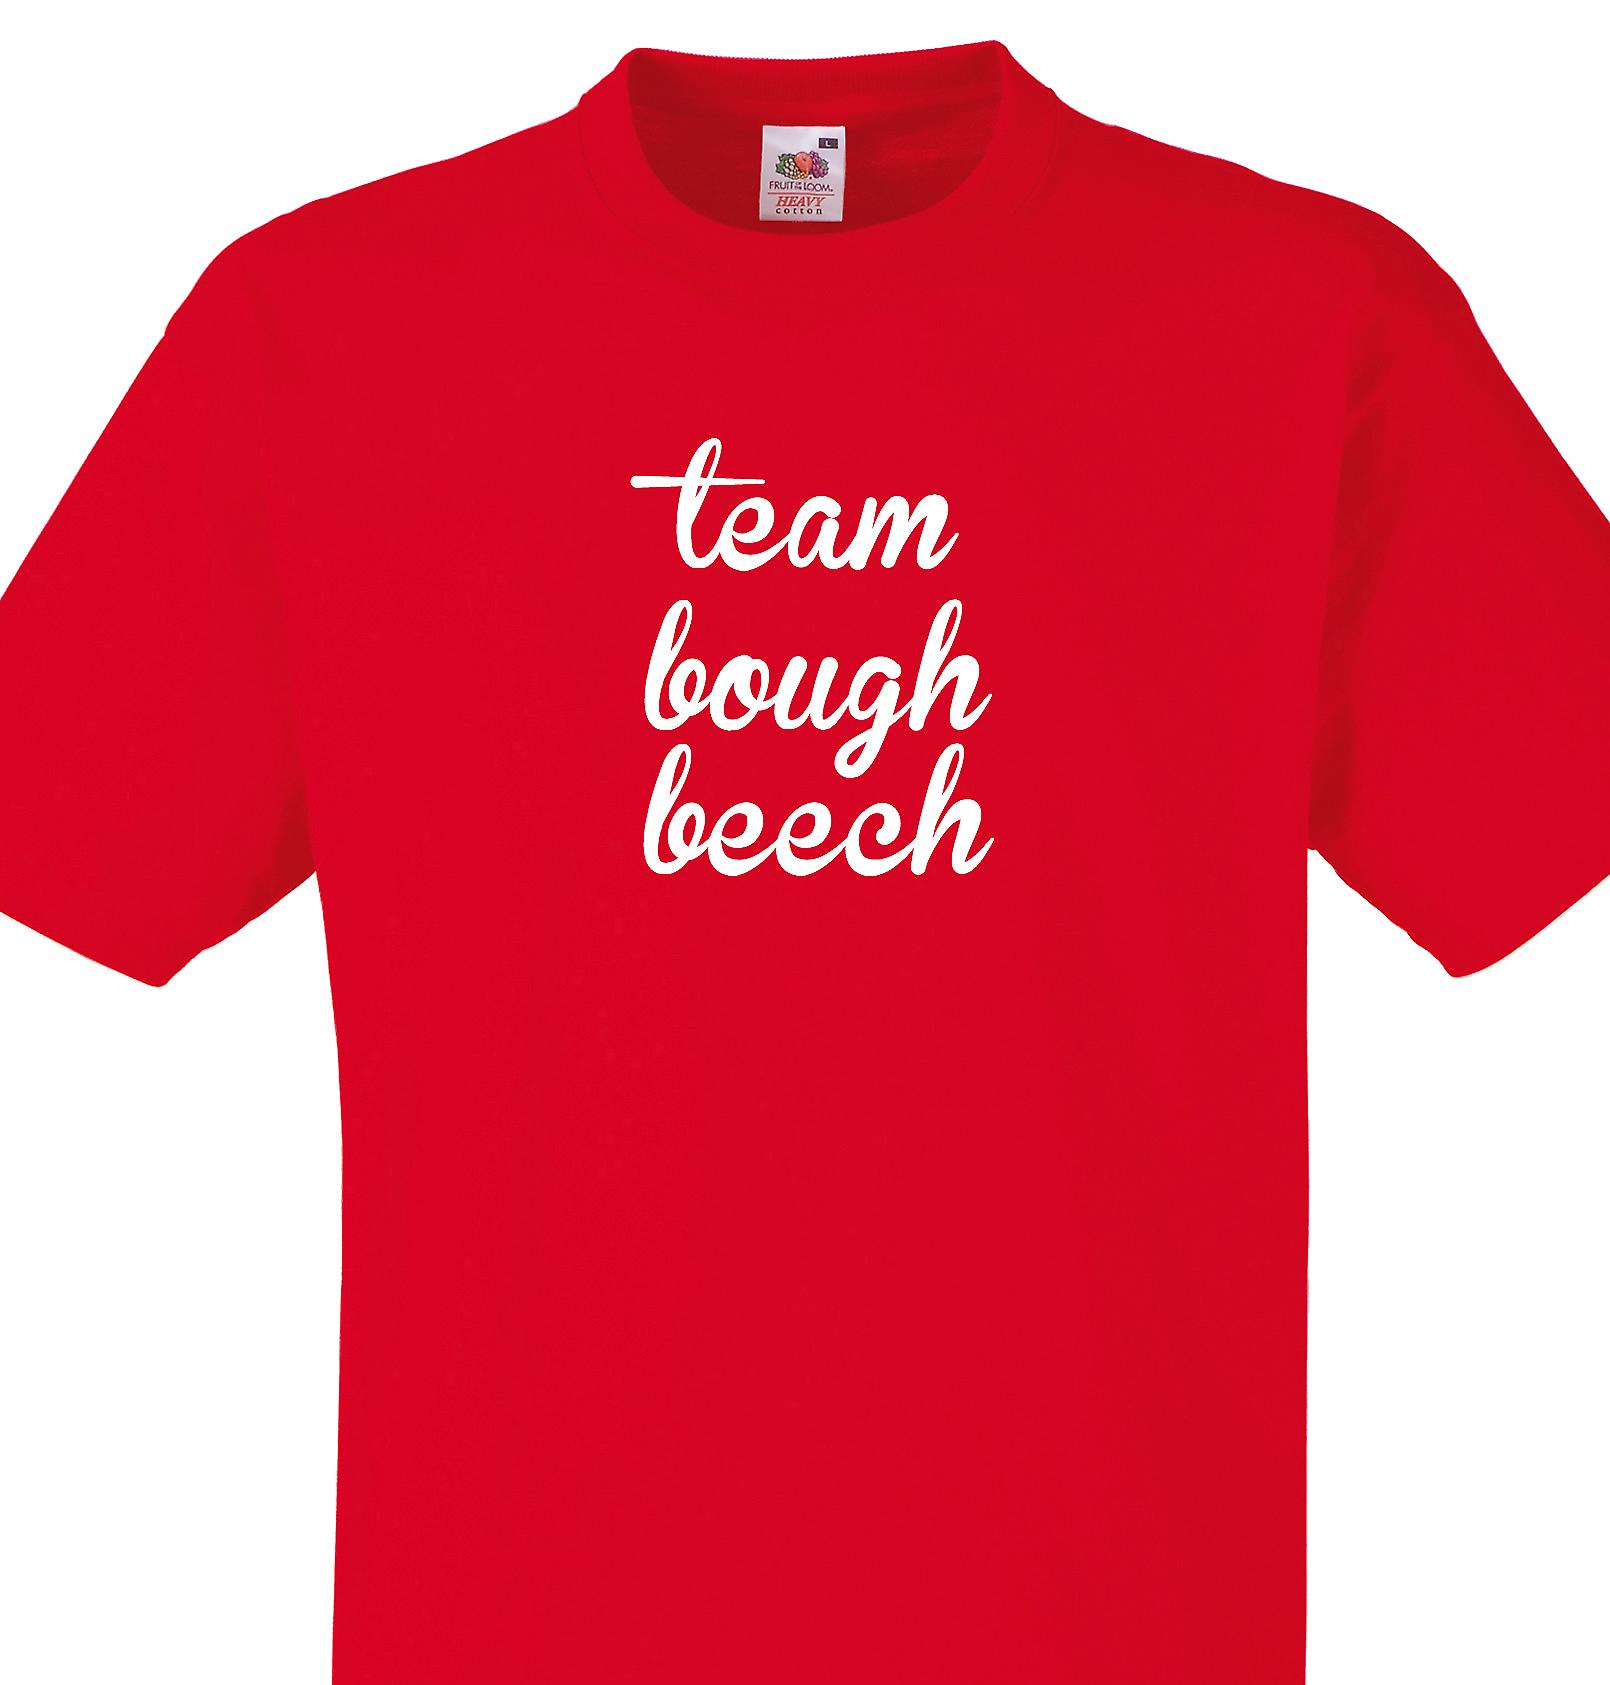 Team Bough beech Red T shirt